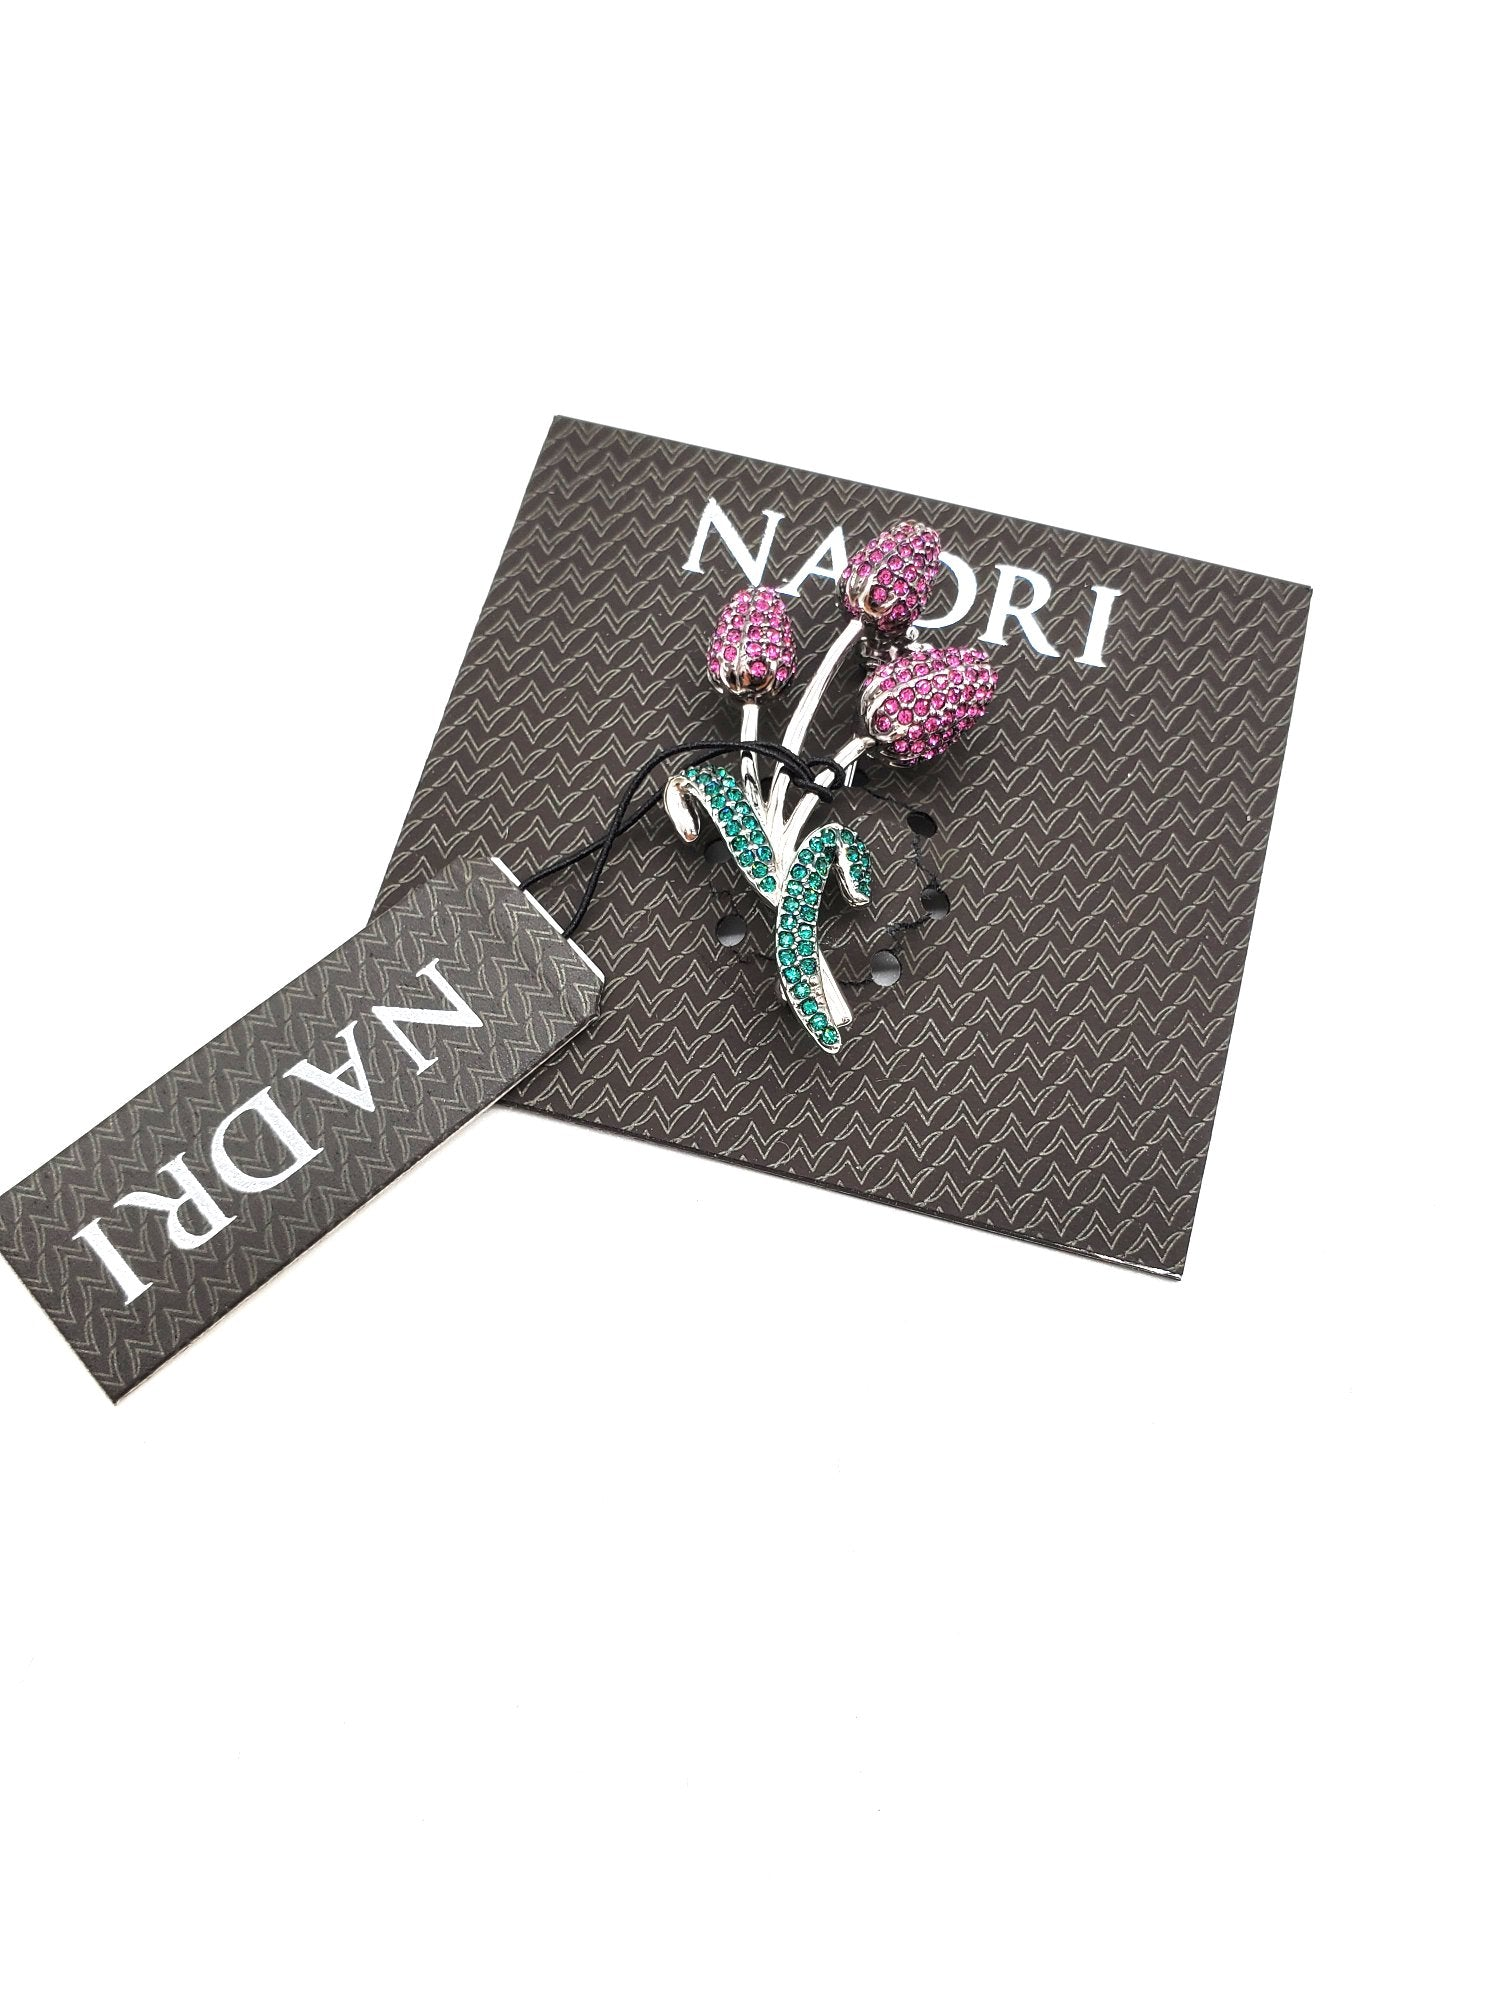 Primary Photo - BRAND:  NADRI<BR>STYLE: PIN <BR>COLOR: SPARKLES <BR>SKU: 262-26275-62788<BR>AS IS<BR>